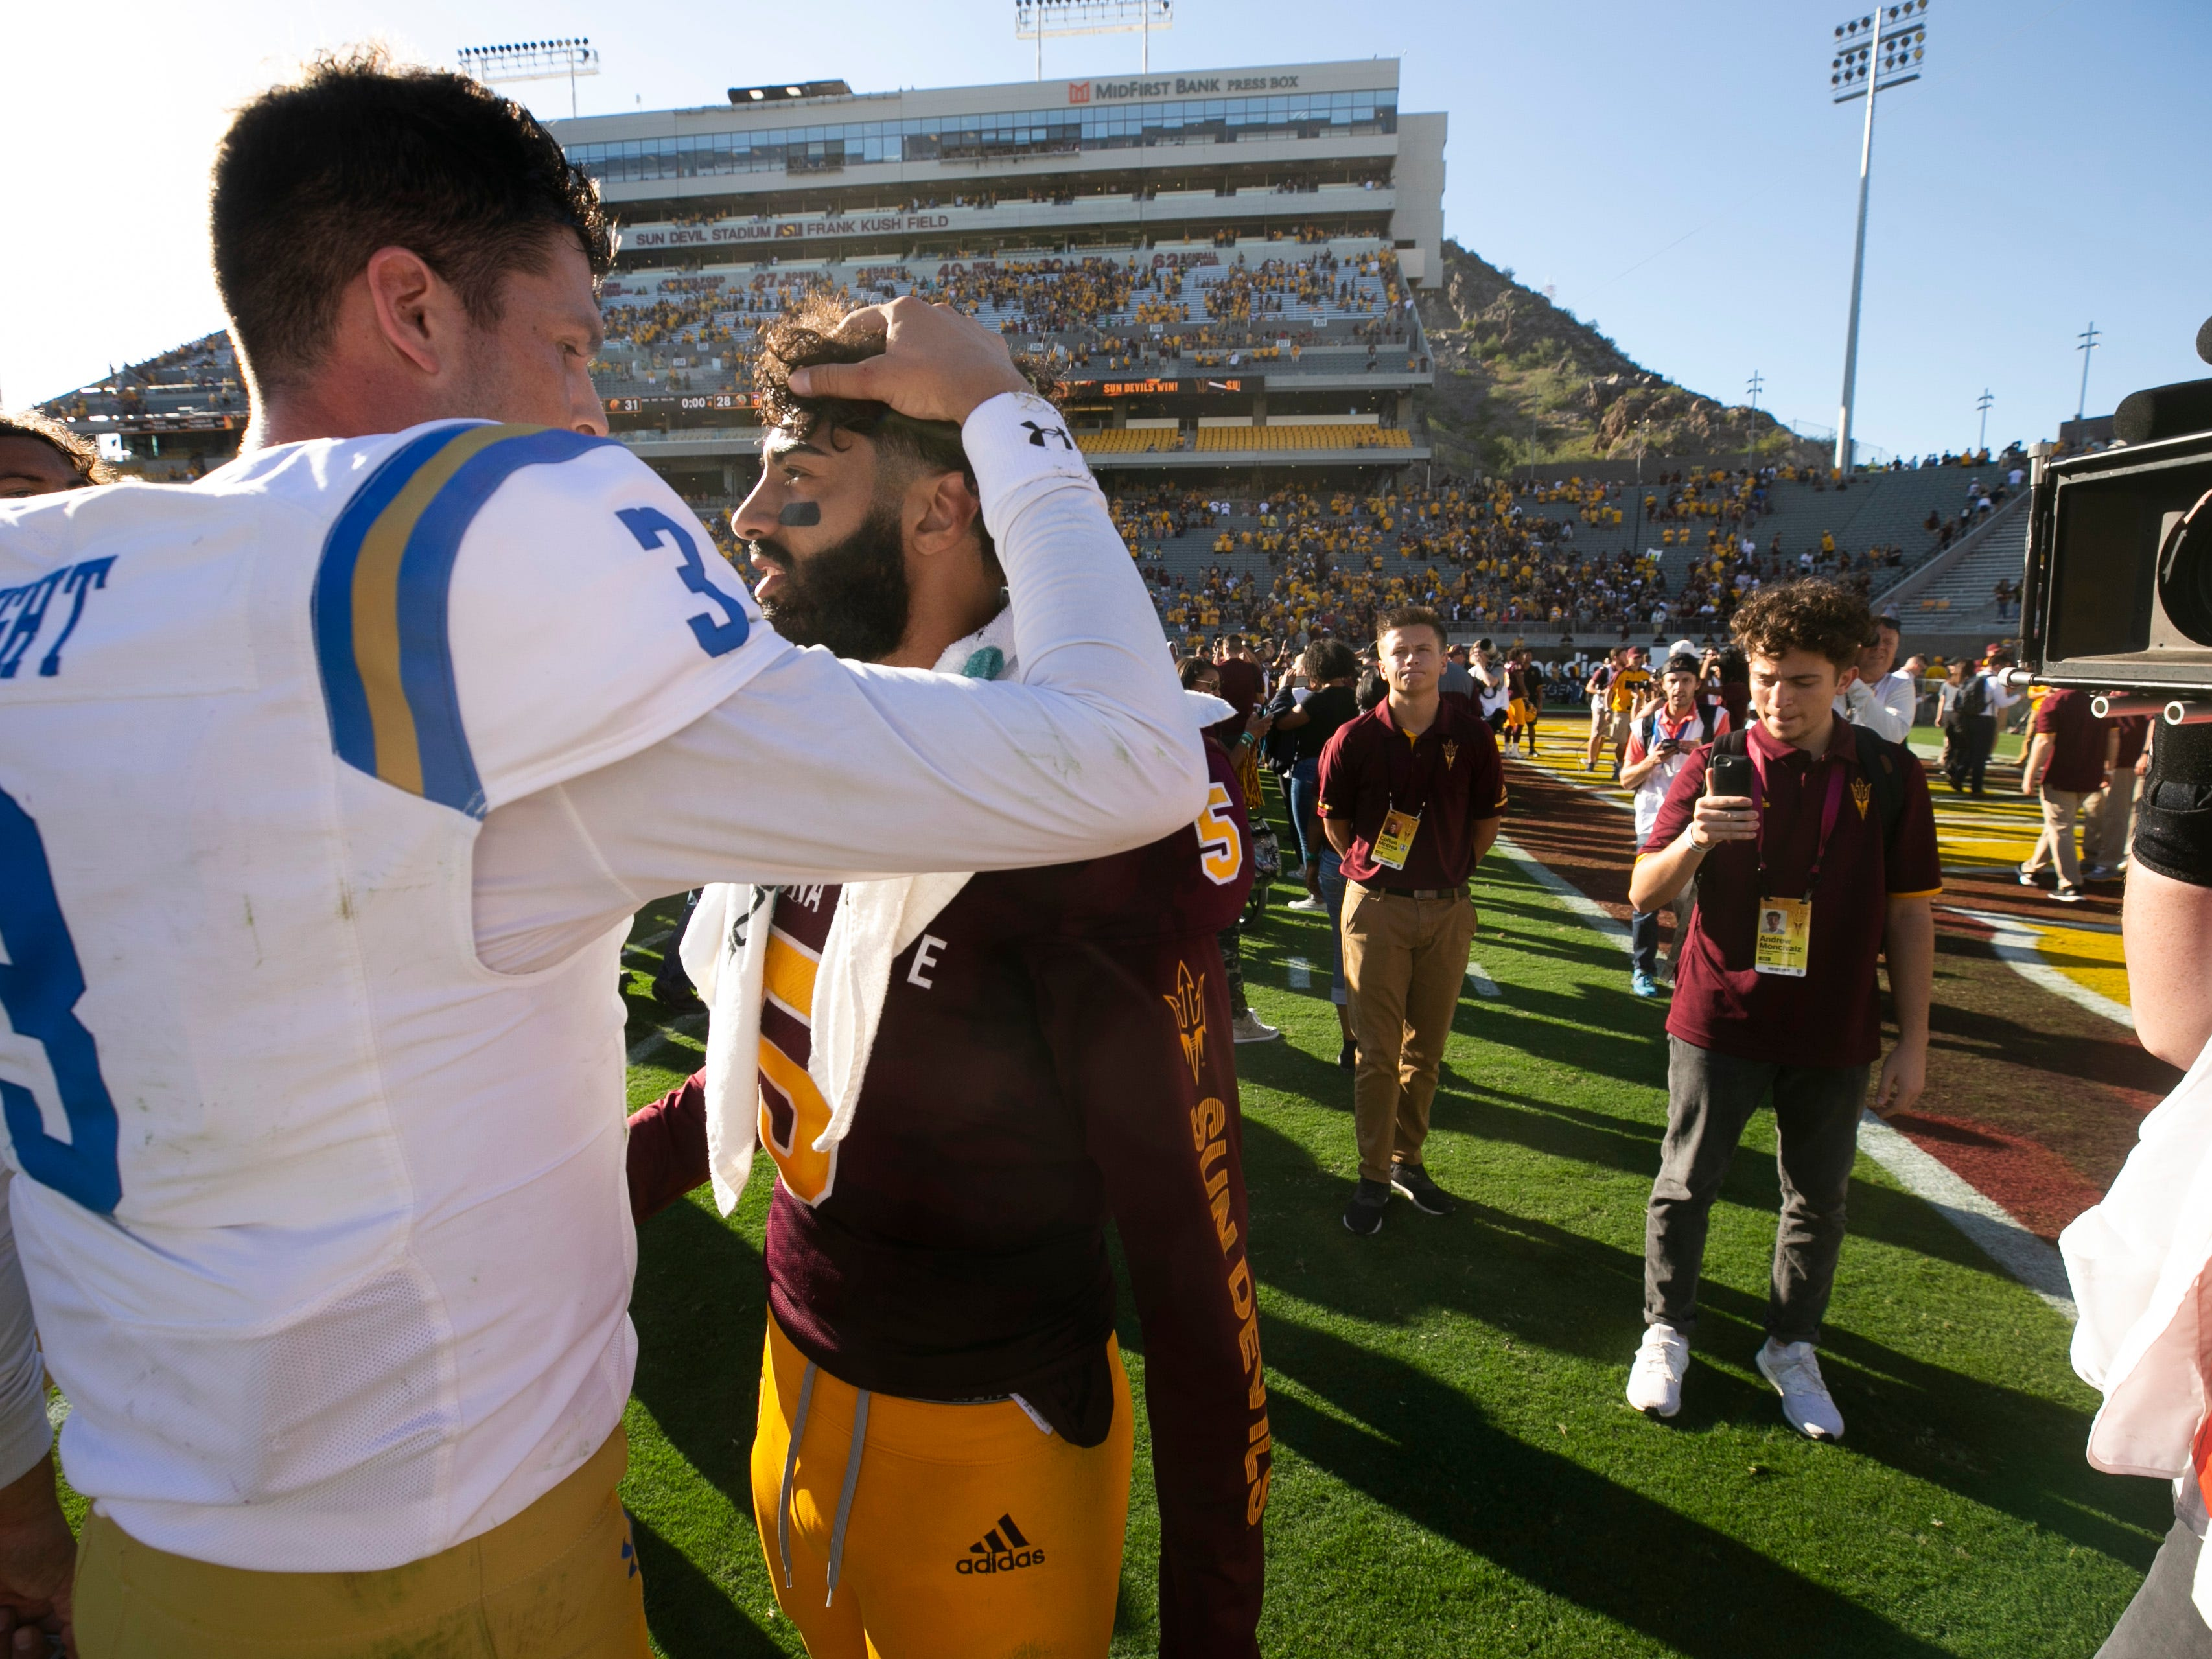 ASU quarterback Manny Wilkins talks to UCLA quarterback Wilton Speight after ASU's 31-28 win over UCLA in the PAC-12 college football game at Sun Devil Stadium in Tempe on Saturday, November 10, 2018. This is the last game at Sun Devil Stadium for Wilkins.